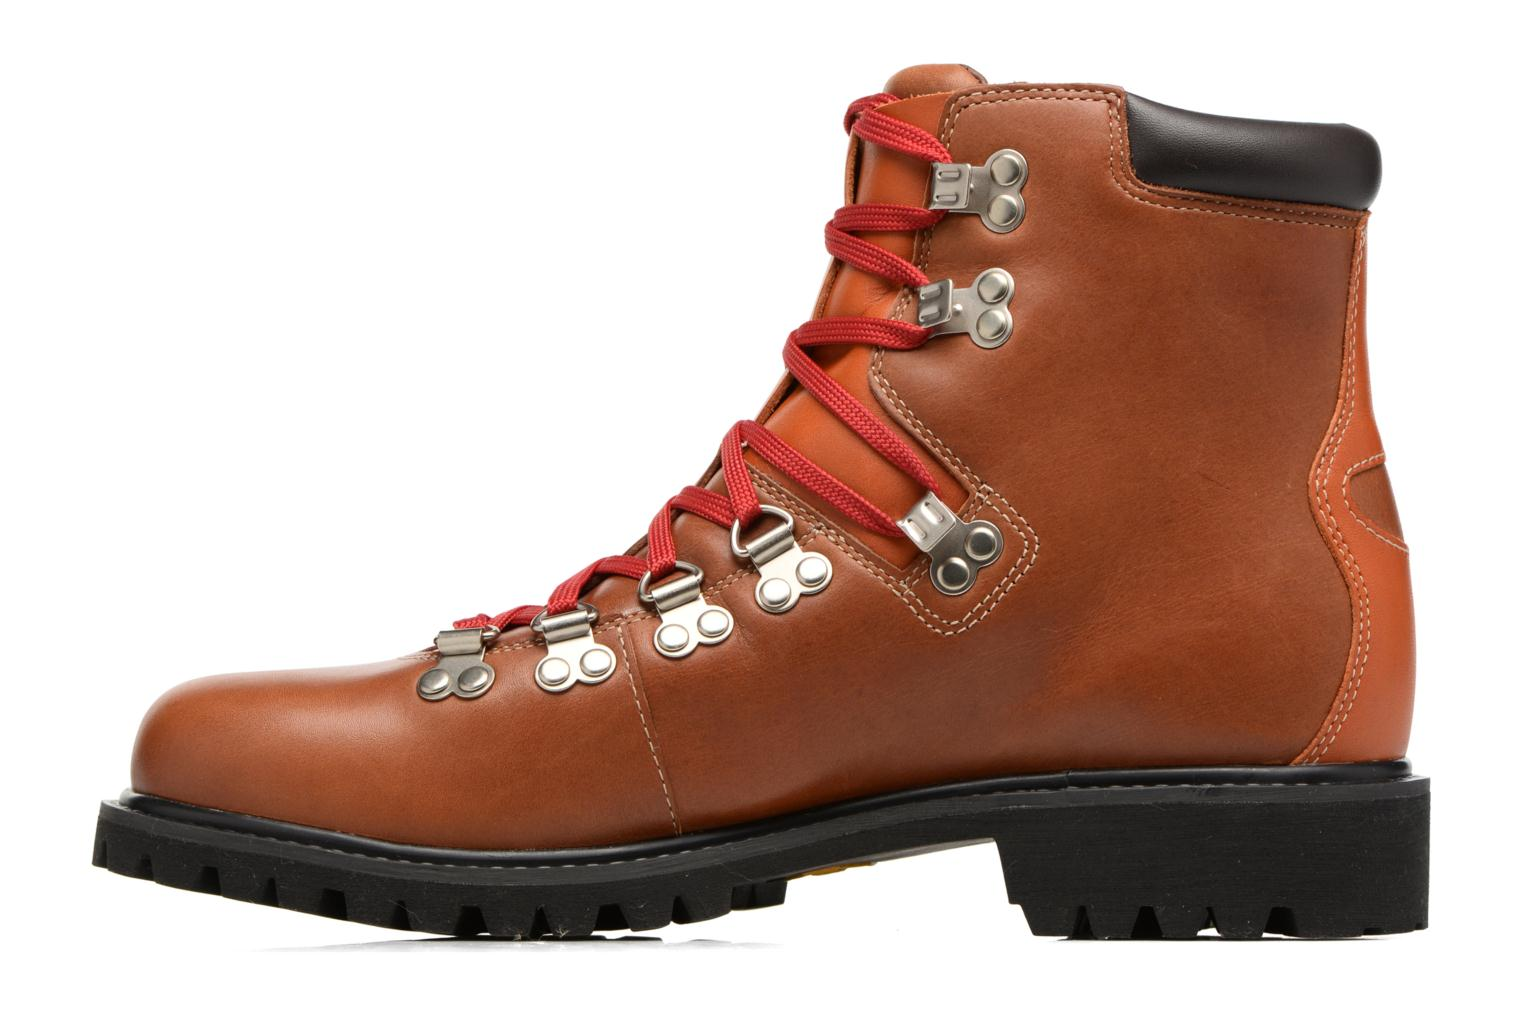 Bottines et boots Timberland 1978 Hike WP Marron vue face